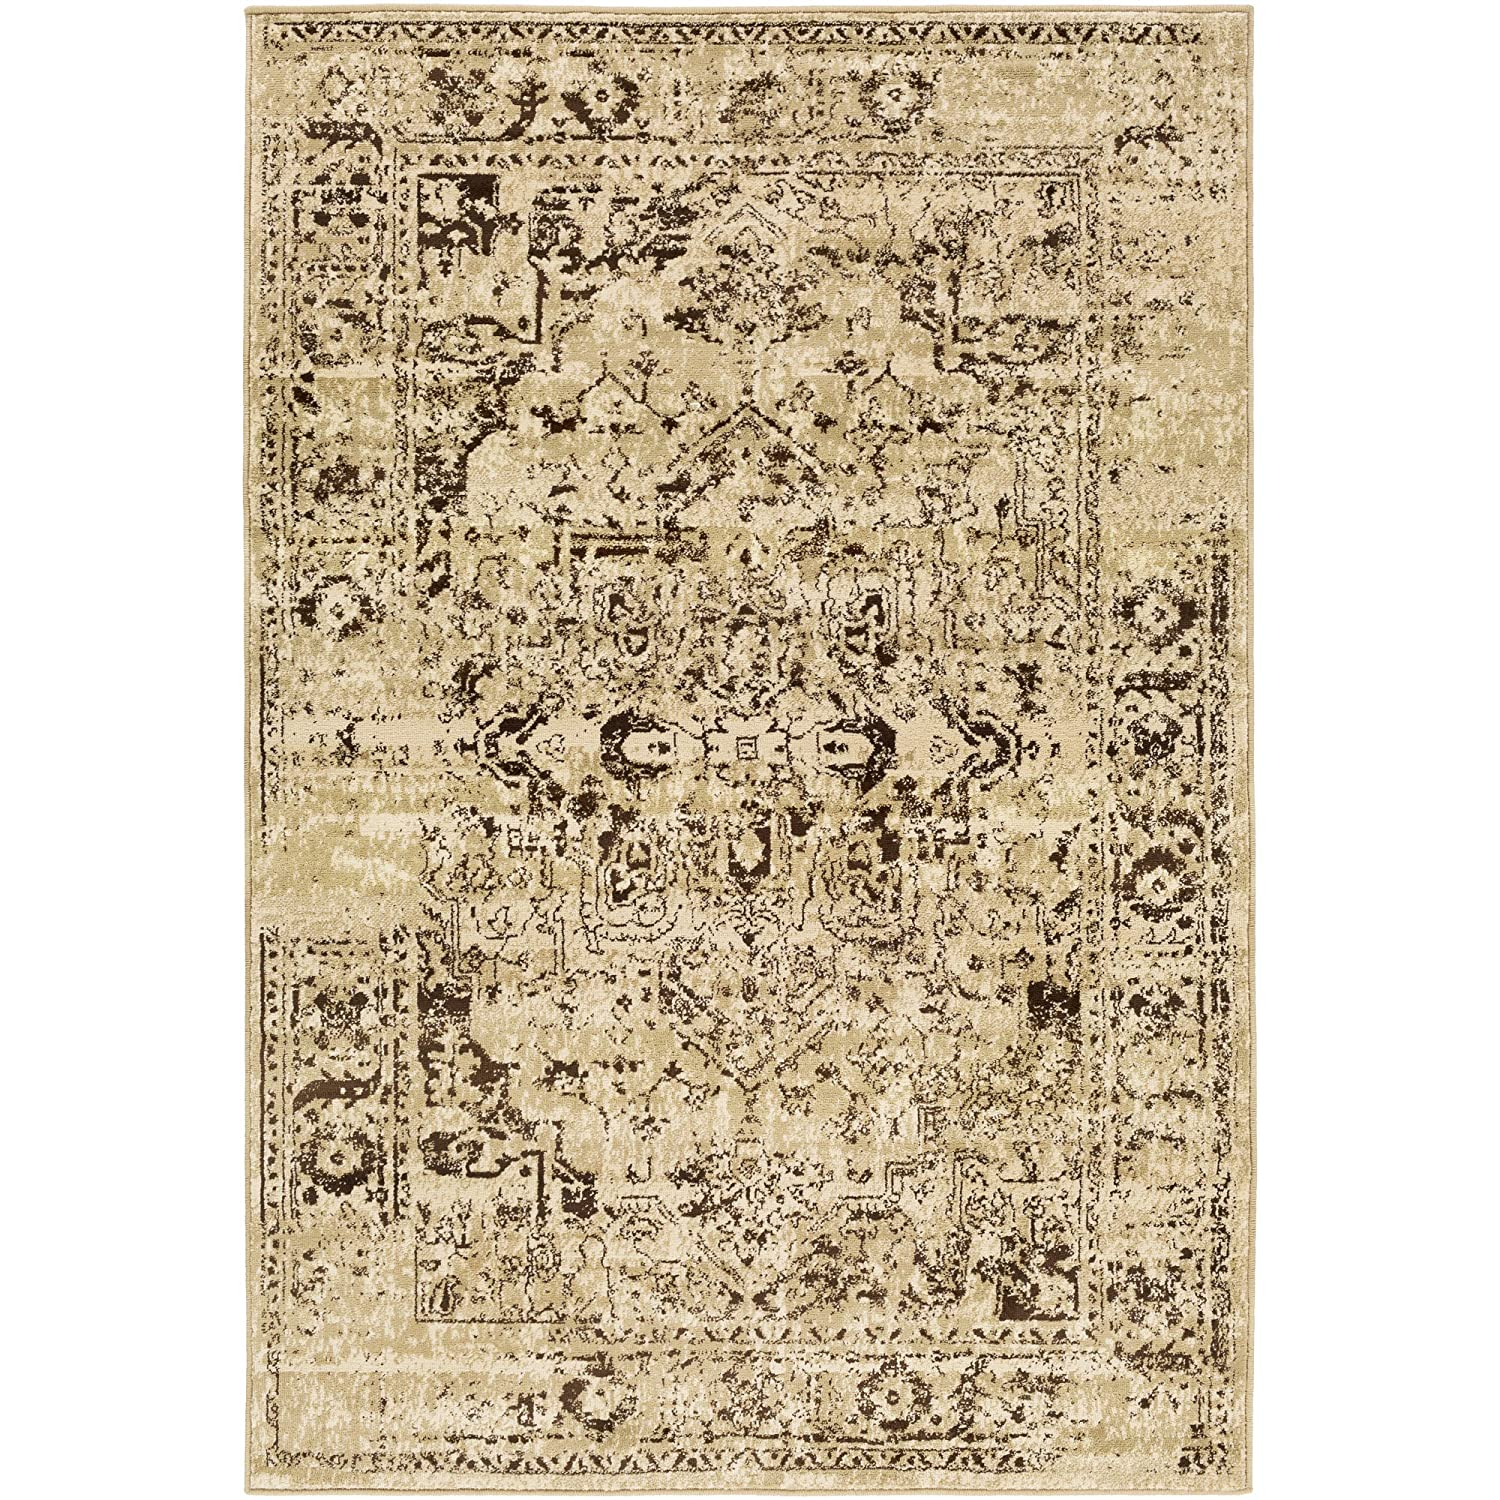 Resolute Beige Updated Traditional Area Rug 2'2' x 7'6'